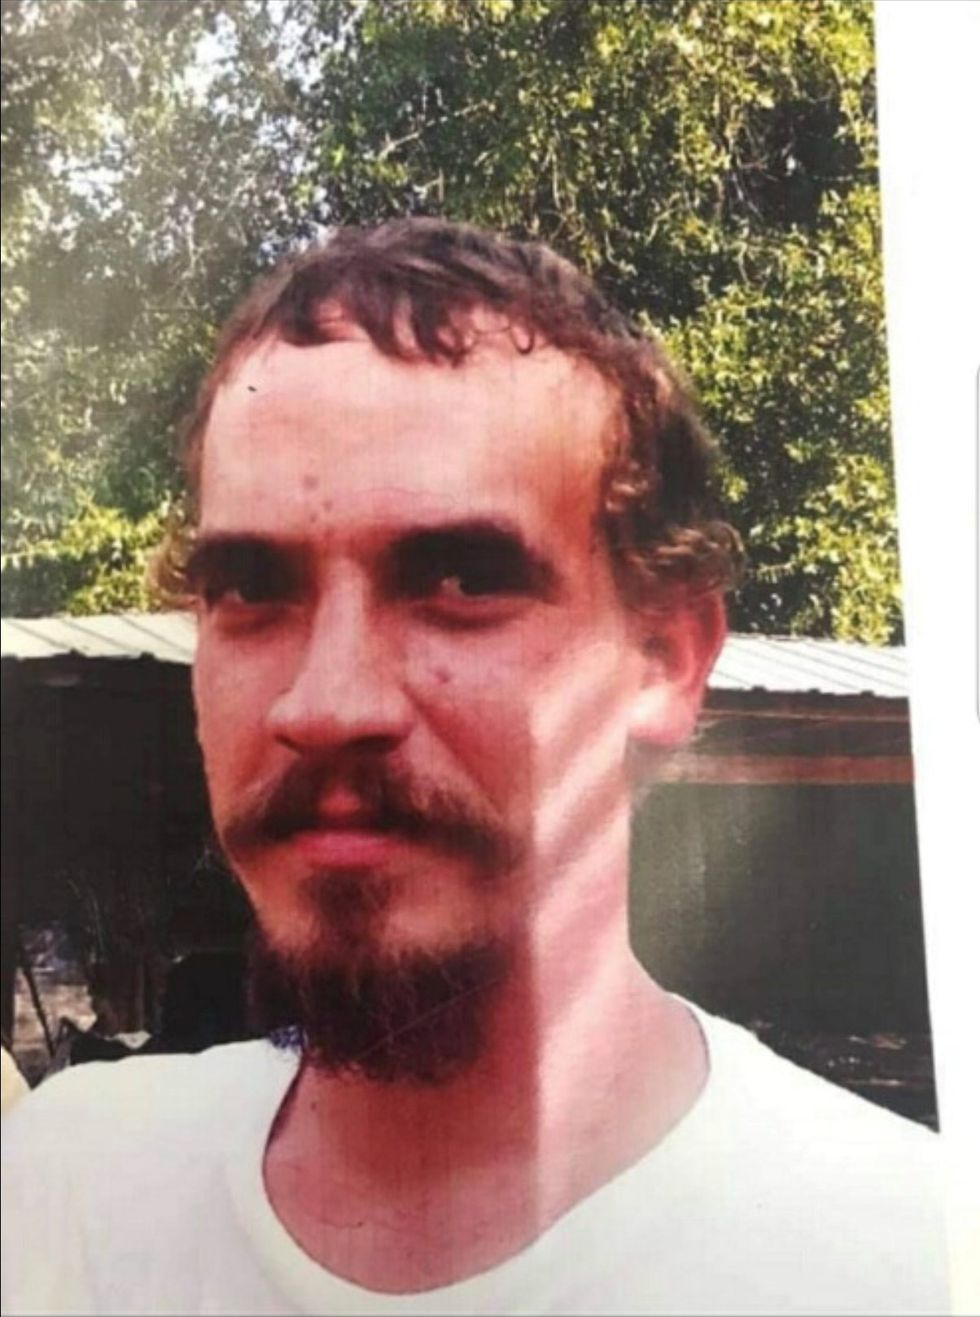 35-year-old Brett Joshua Grantham's body was buried on land off Peak Road in Holmes County.